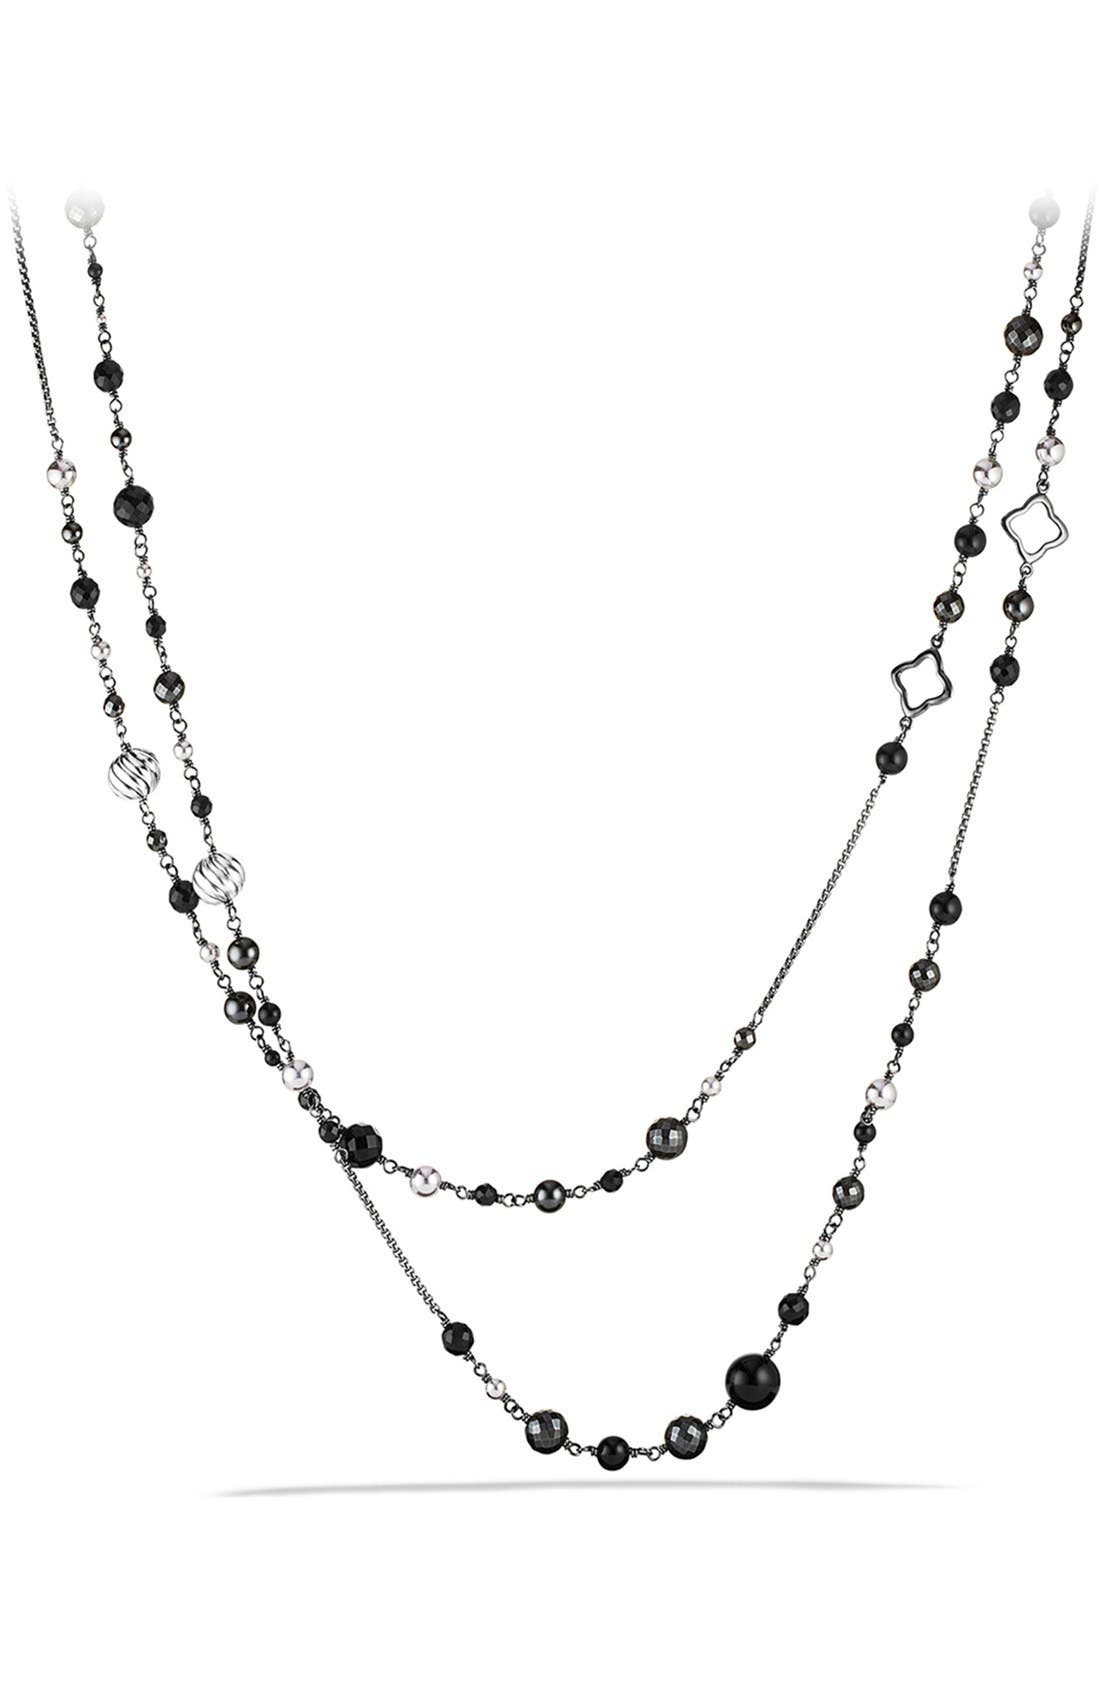 'DY Elements' Chain Necklace with Black Onyx and Hematine,                             Main thumbnail 1, color,                             Black Onyx